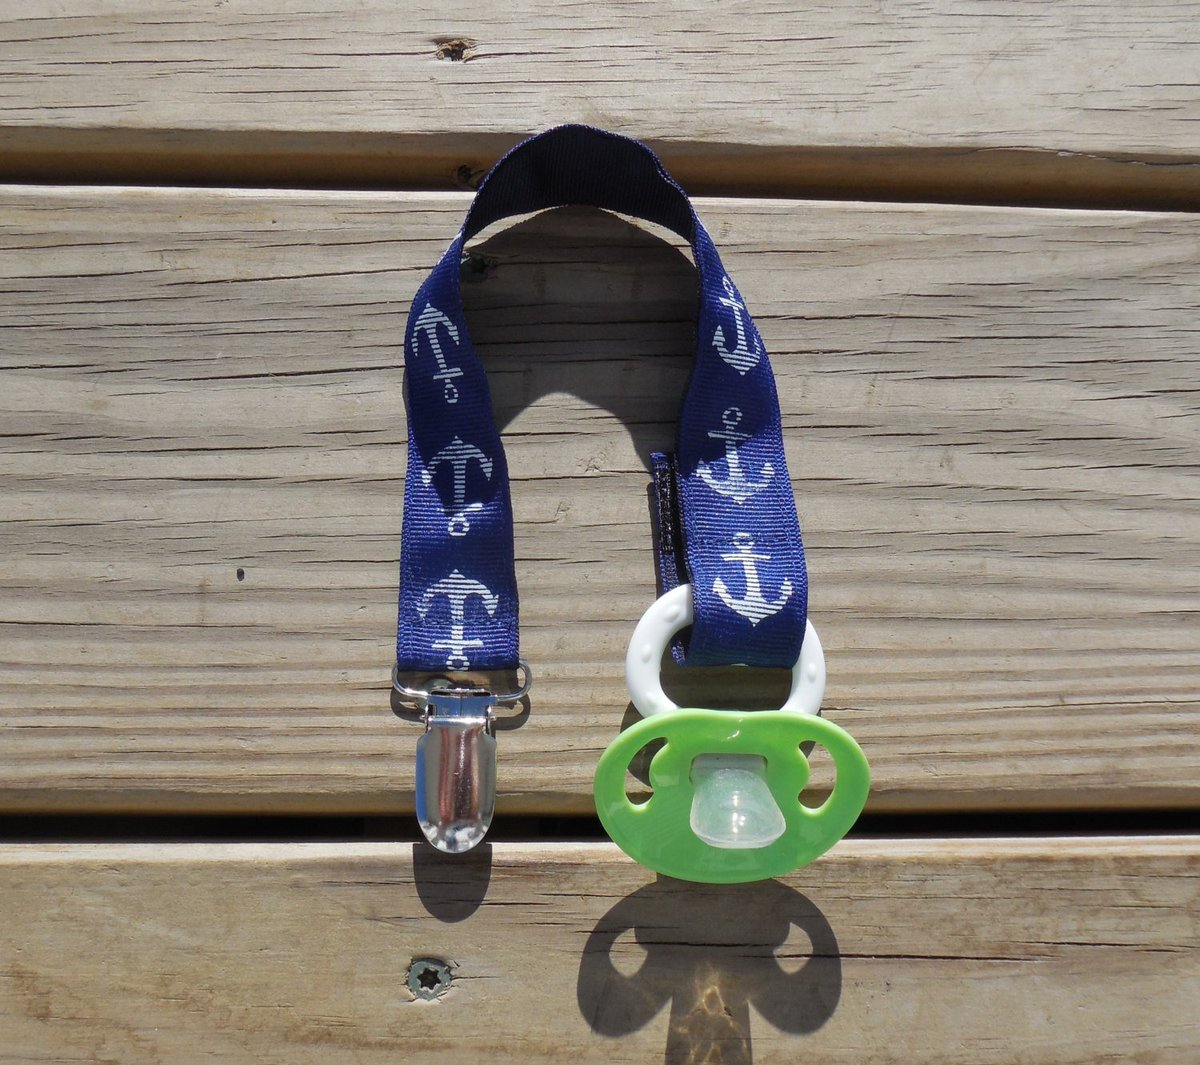 Pacifier Holder, Navy Anchors Ribbon Pacifier Holder or Clip Baby…  http:// tuppu.net/8e695d20  &nbsp;   #EpicOnEtsy #GabbysQuilts<br>http://pic.twitter.com/O1OISBkFuc